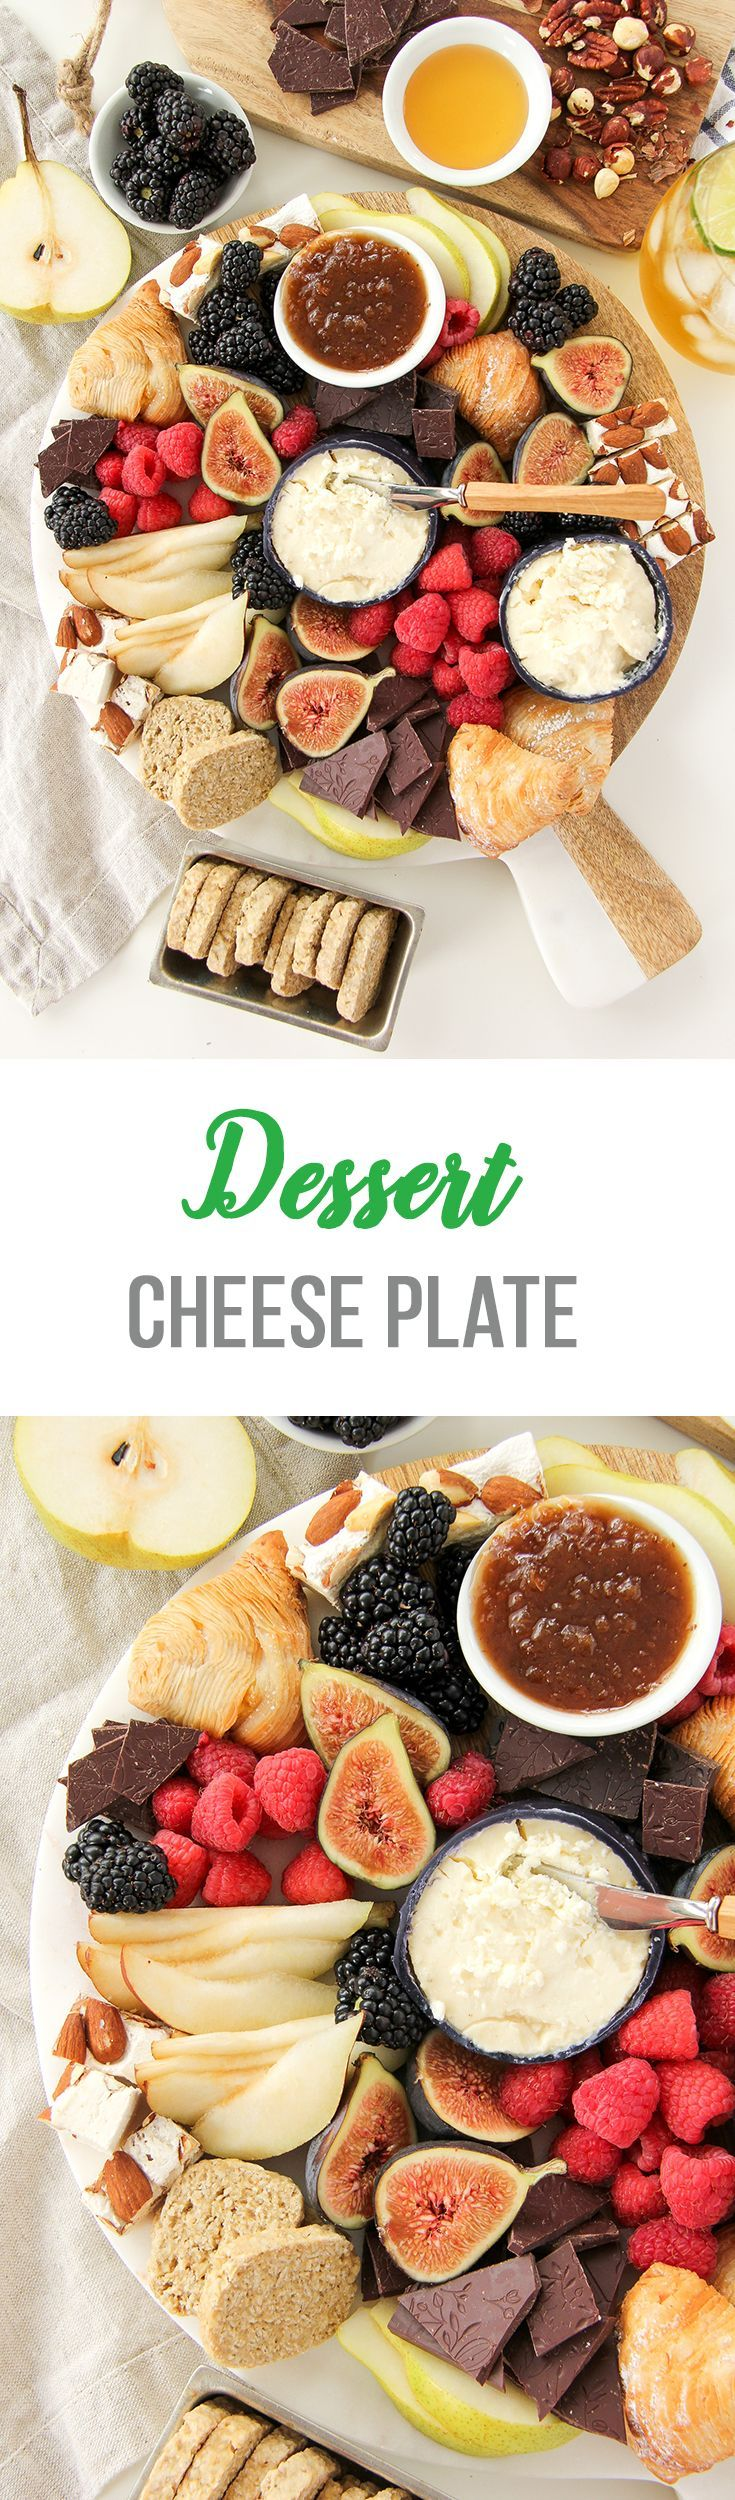 Think outside the charcuterie plate, and make a Dessert Cheese Plate!  This plate is loaded up with delicious cheese, chocolate, nuts and fruit!  Perfect for entertaining.